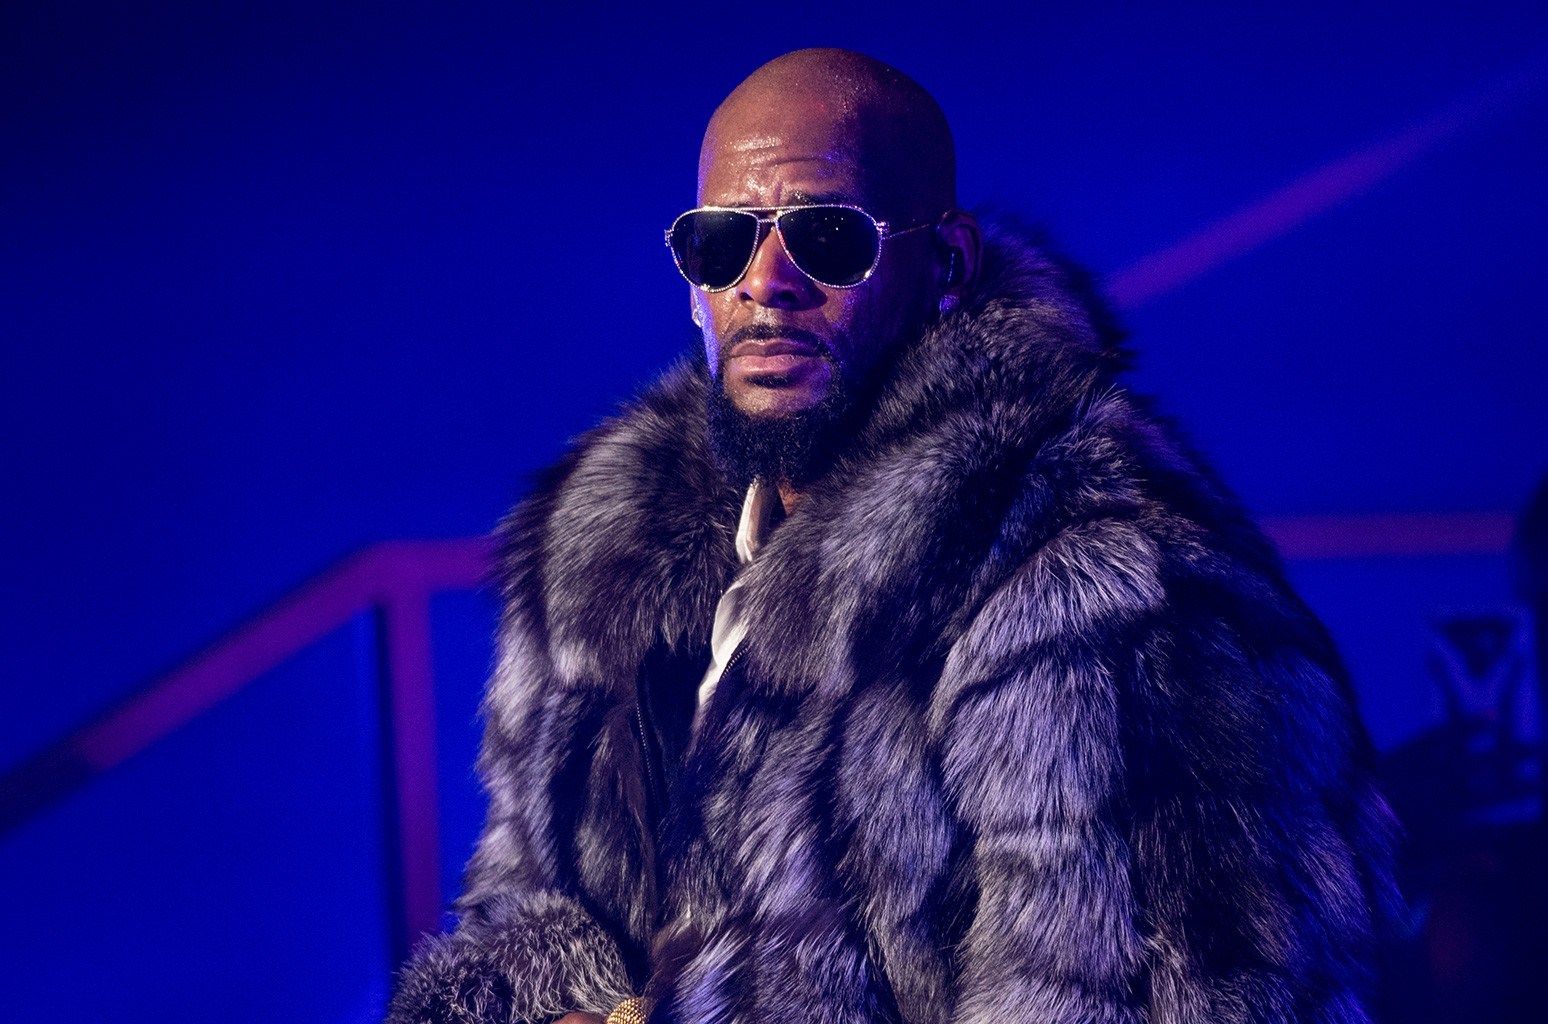 R. Kelly Accuser Jerhonda Pace Claims She Was Trained to